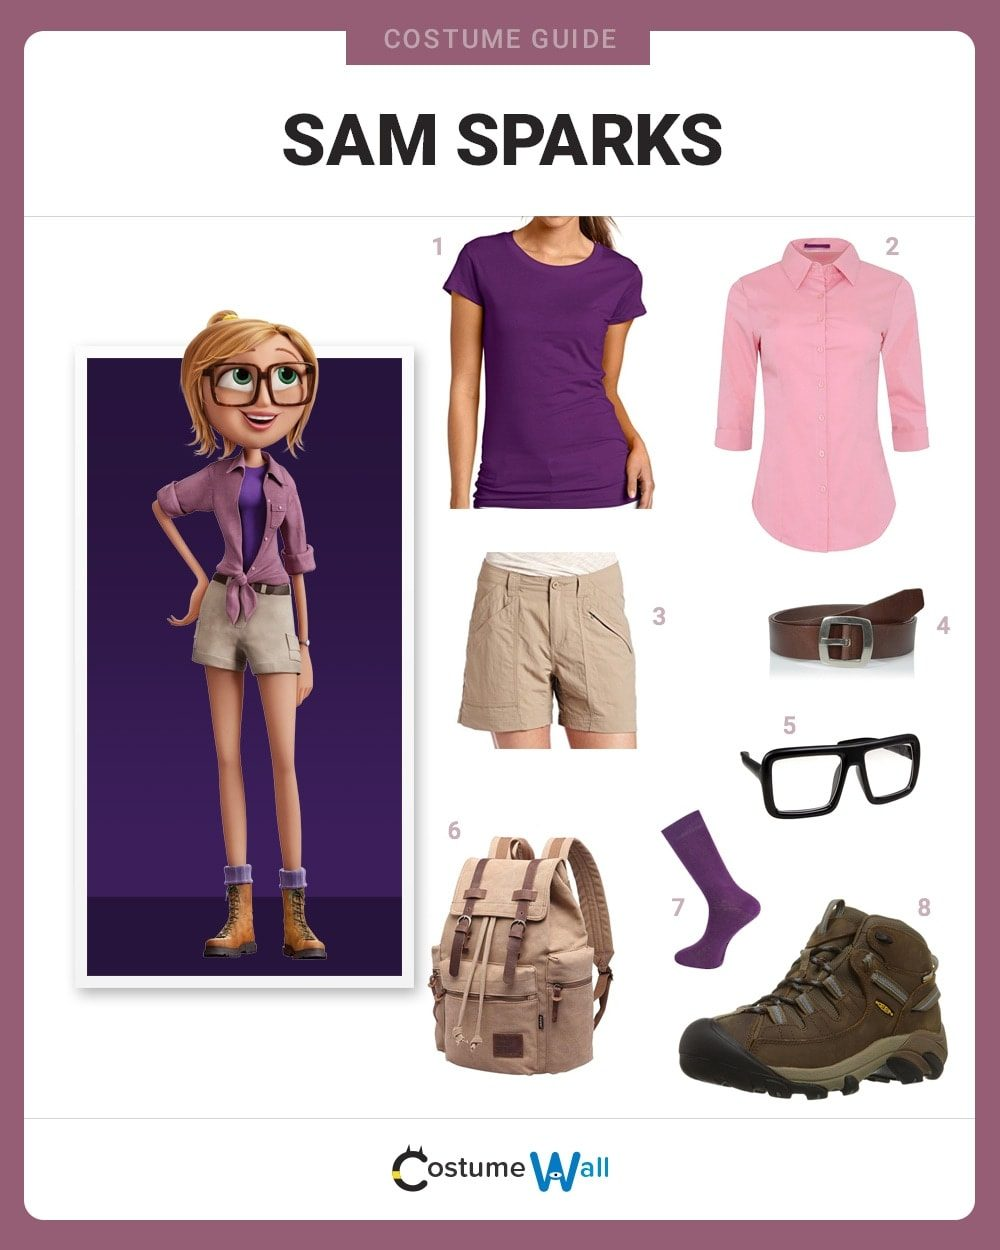 Sam Sparks Costume Guide